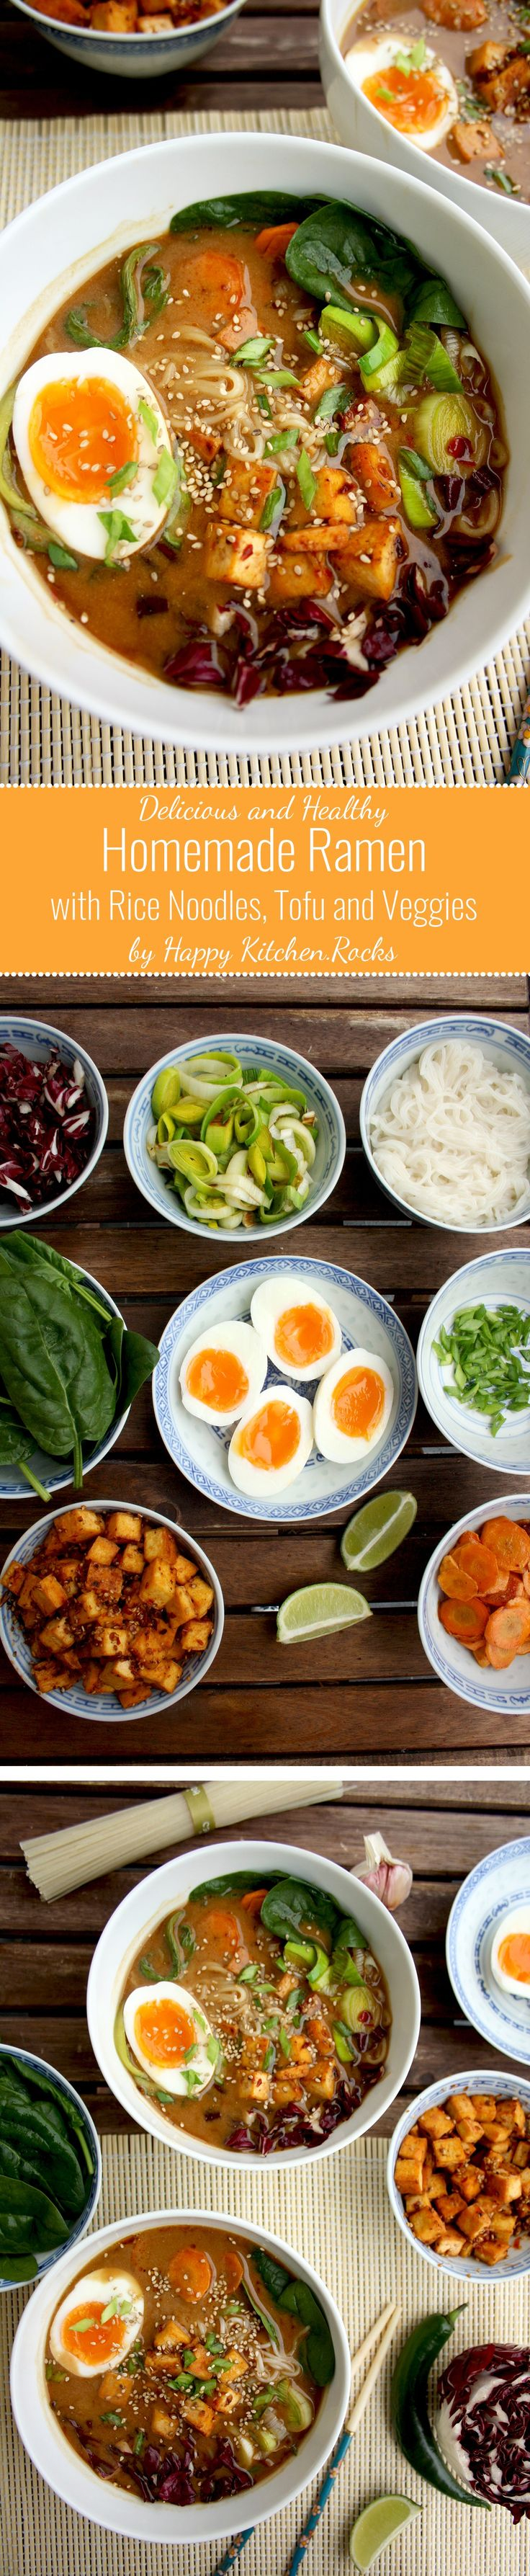 Healthy Ramen with Rice Noodles, Spicy Tofu, Lots of Veggies and Soft-Boiled Eggs: A great gluten-free and healthy homemade alternative to restaurant ramen (Chicken And Broccoli Recipes)